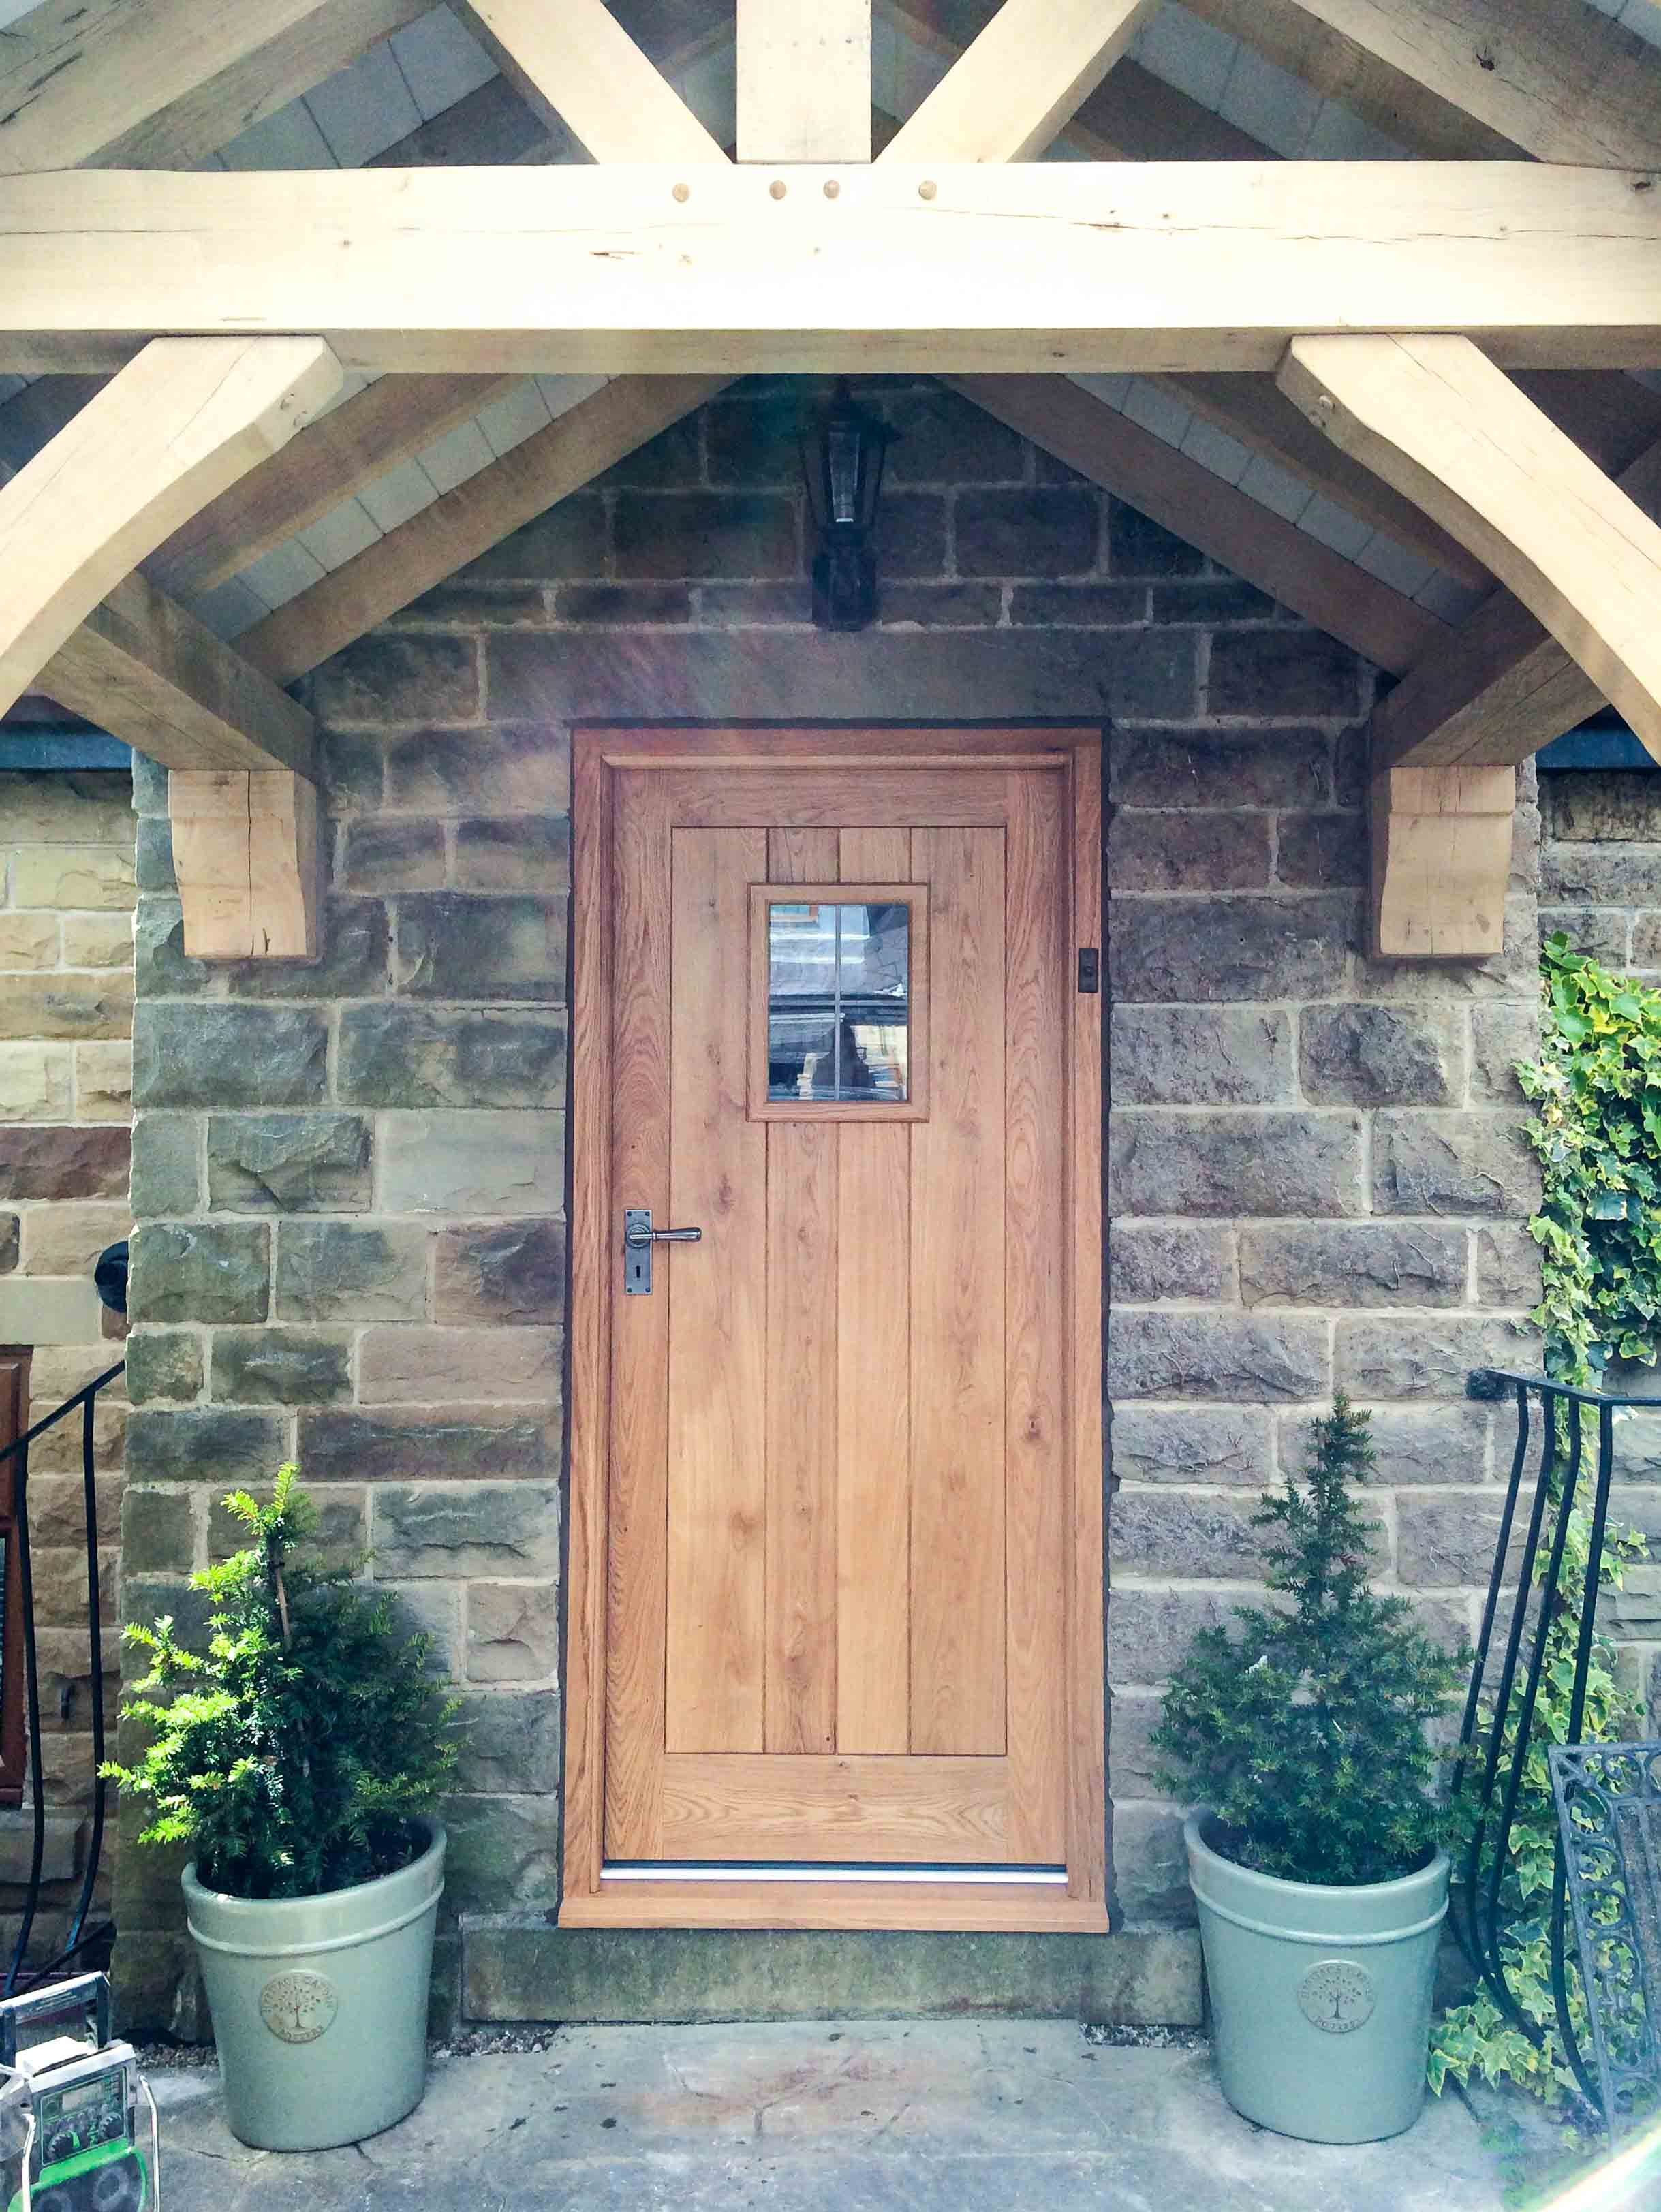 oak door and porch robotham 2-1.jpg